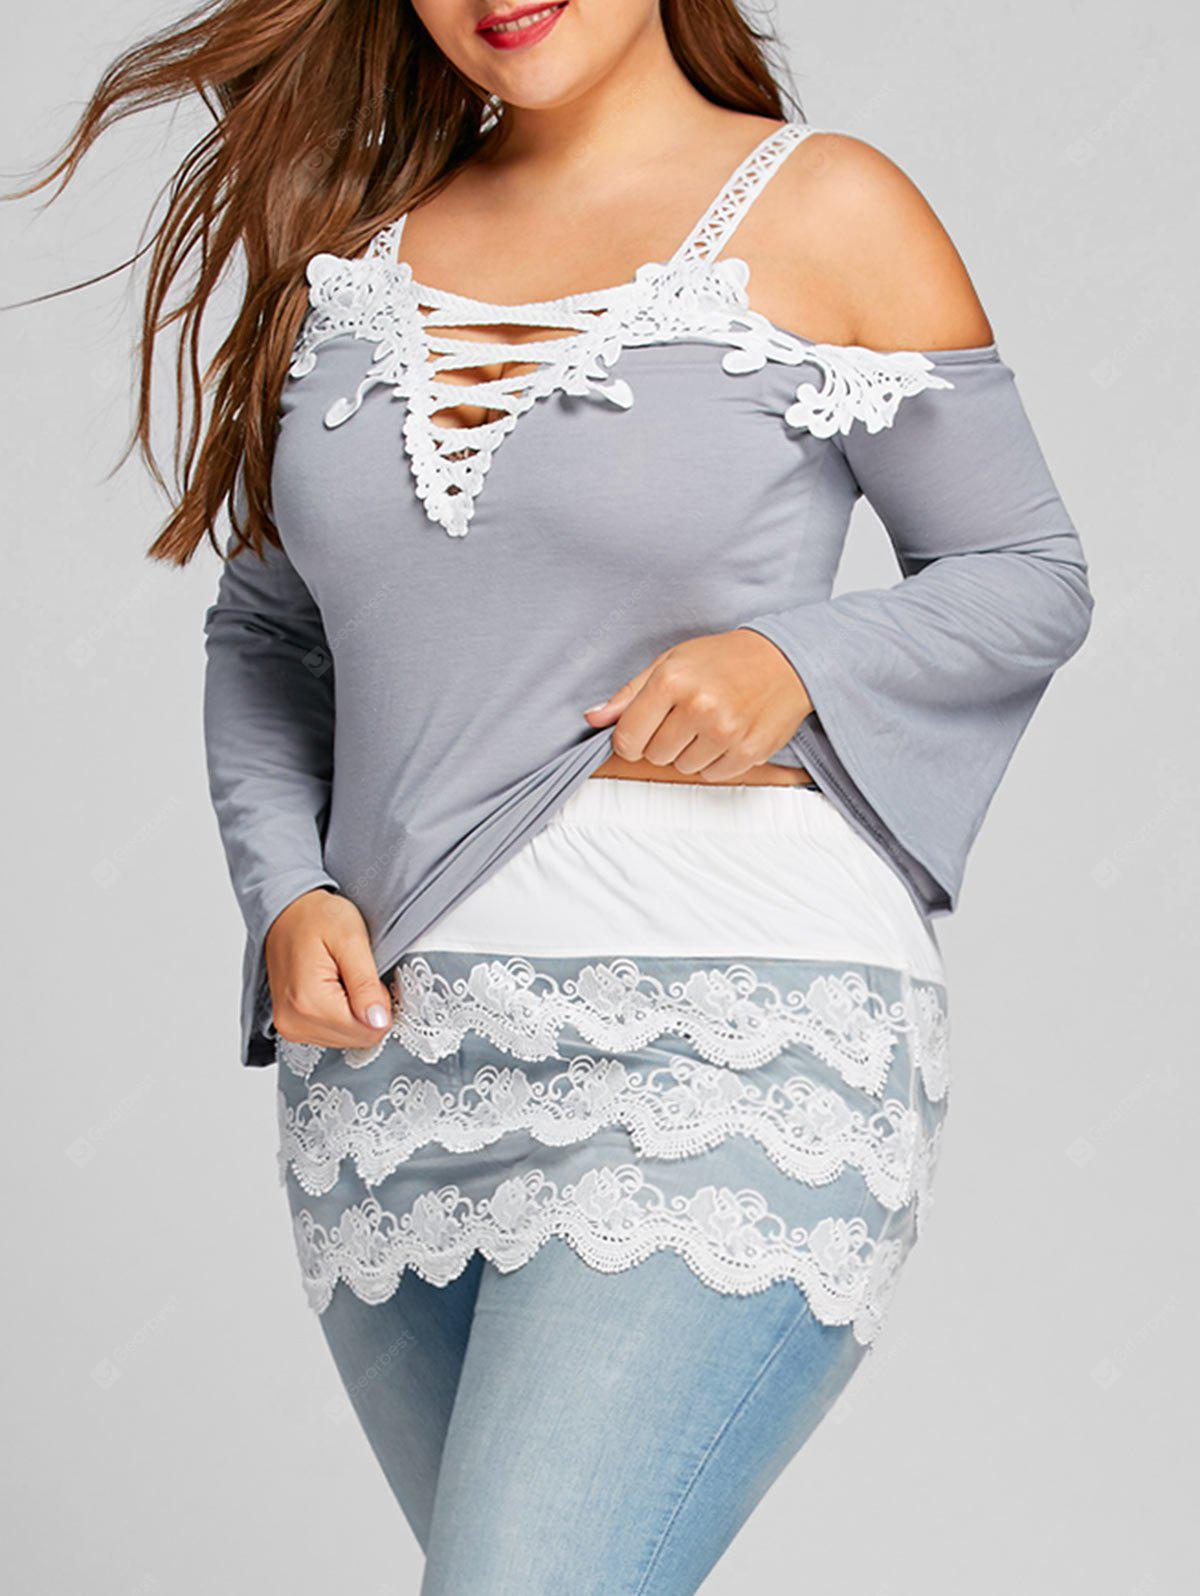 WHITE 2XL Plus Size Layered Scalloped Lace Extender Skirt